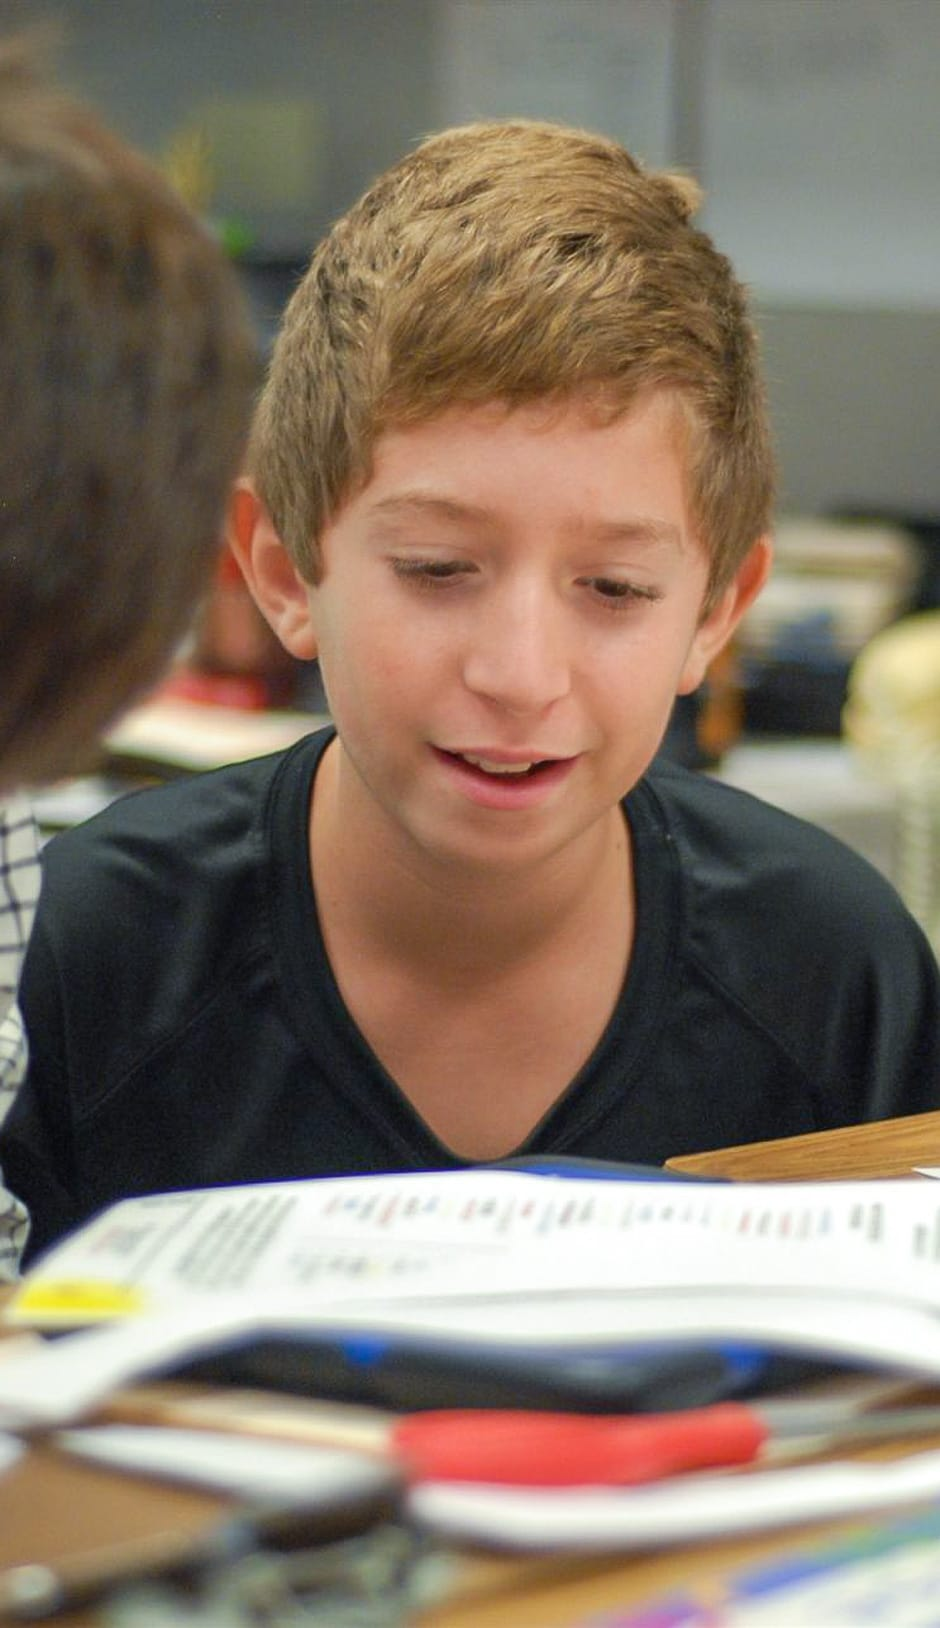 Middle school student practicing his writing